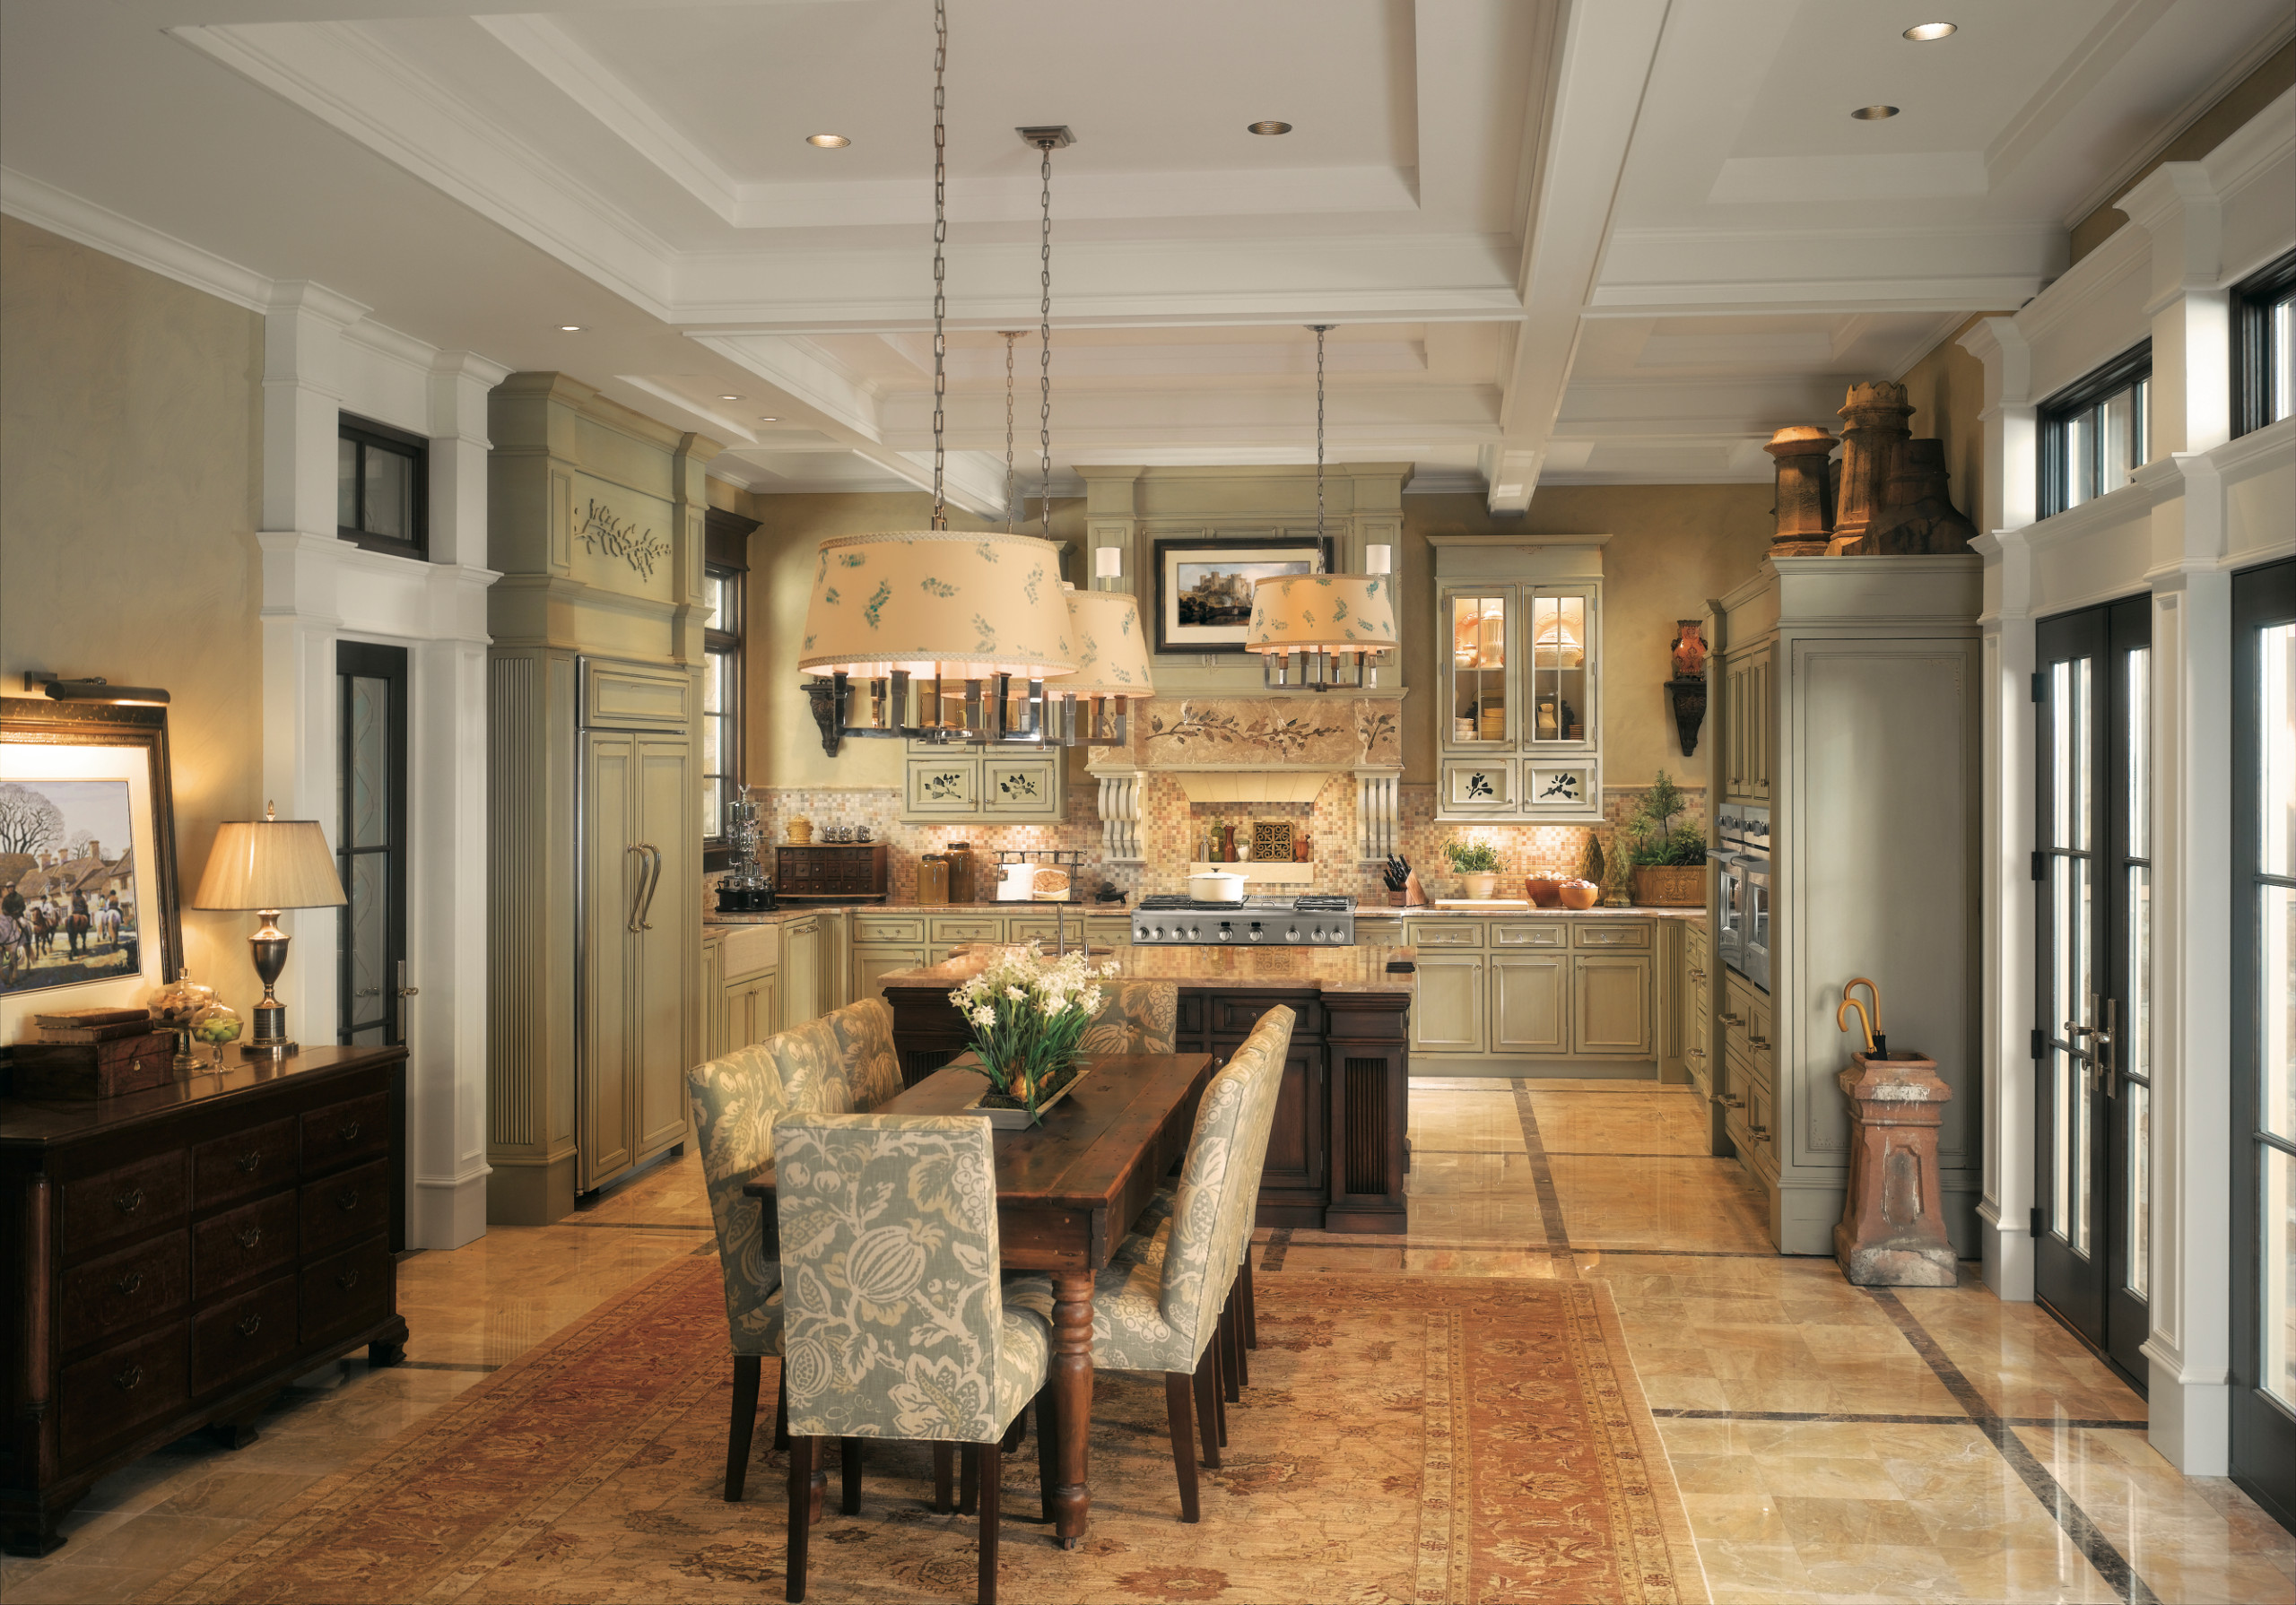 75 Beautiful French Country Dining Room Pictures Ideas January 2021 Houzz